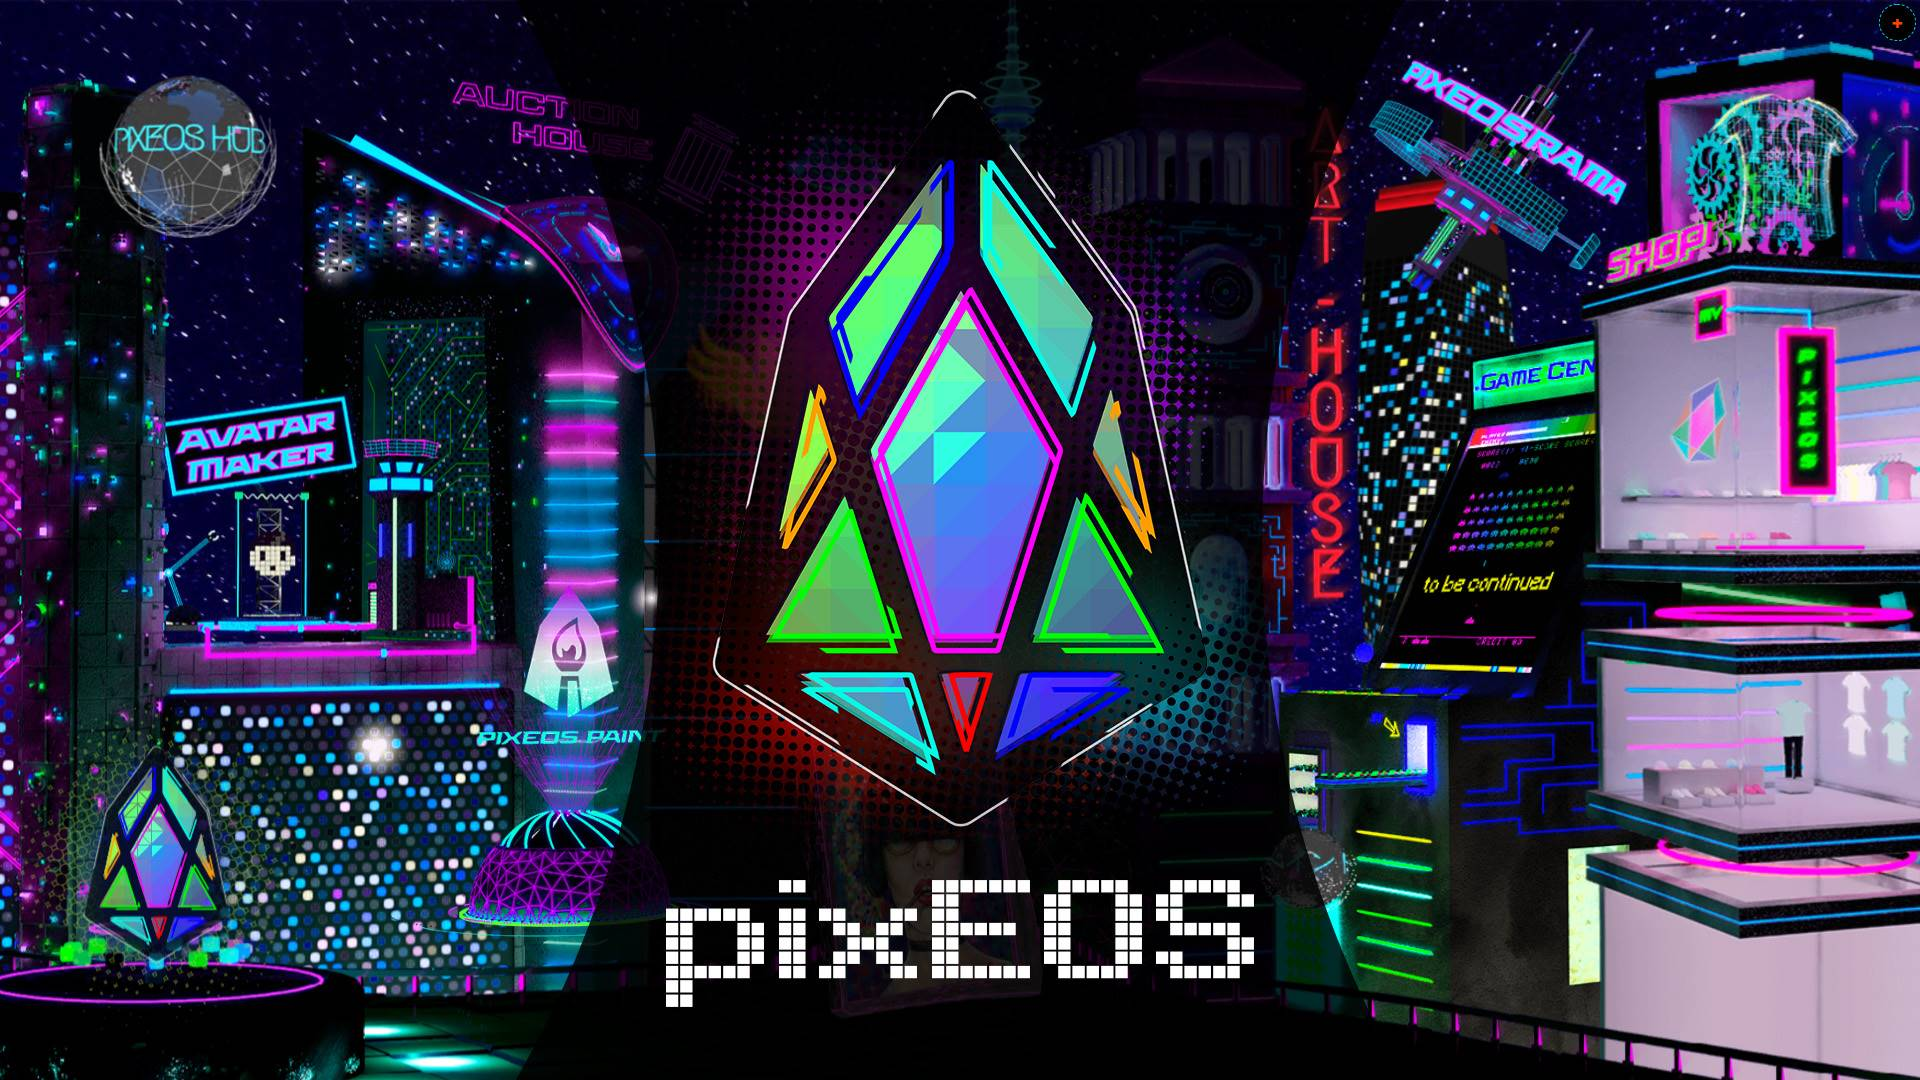 El futurista mundo del Game Center de pixEOS